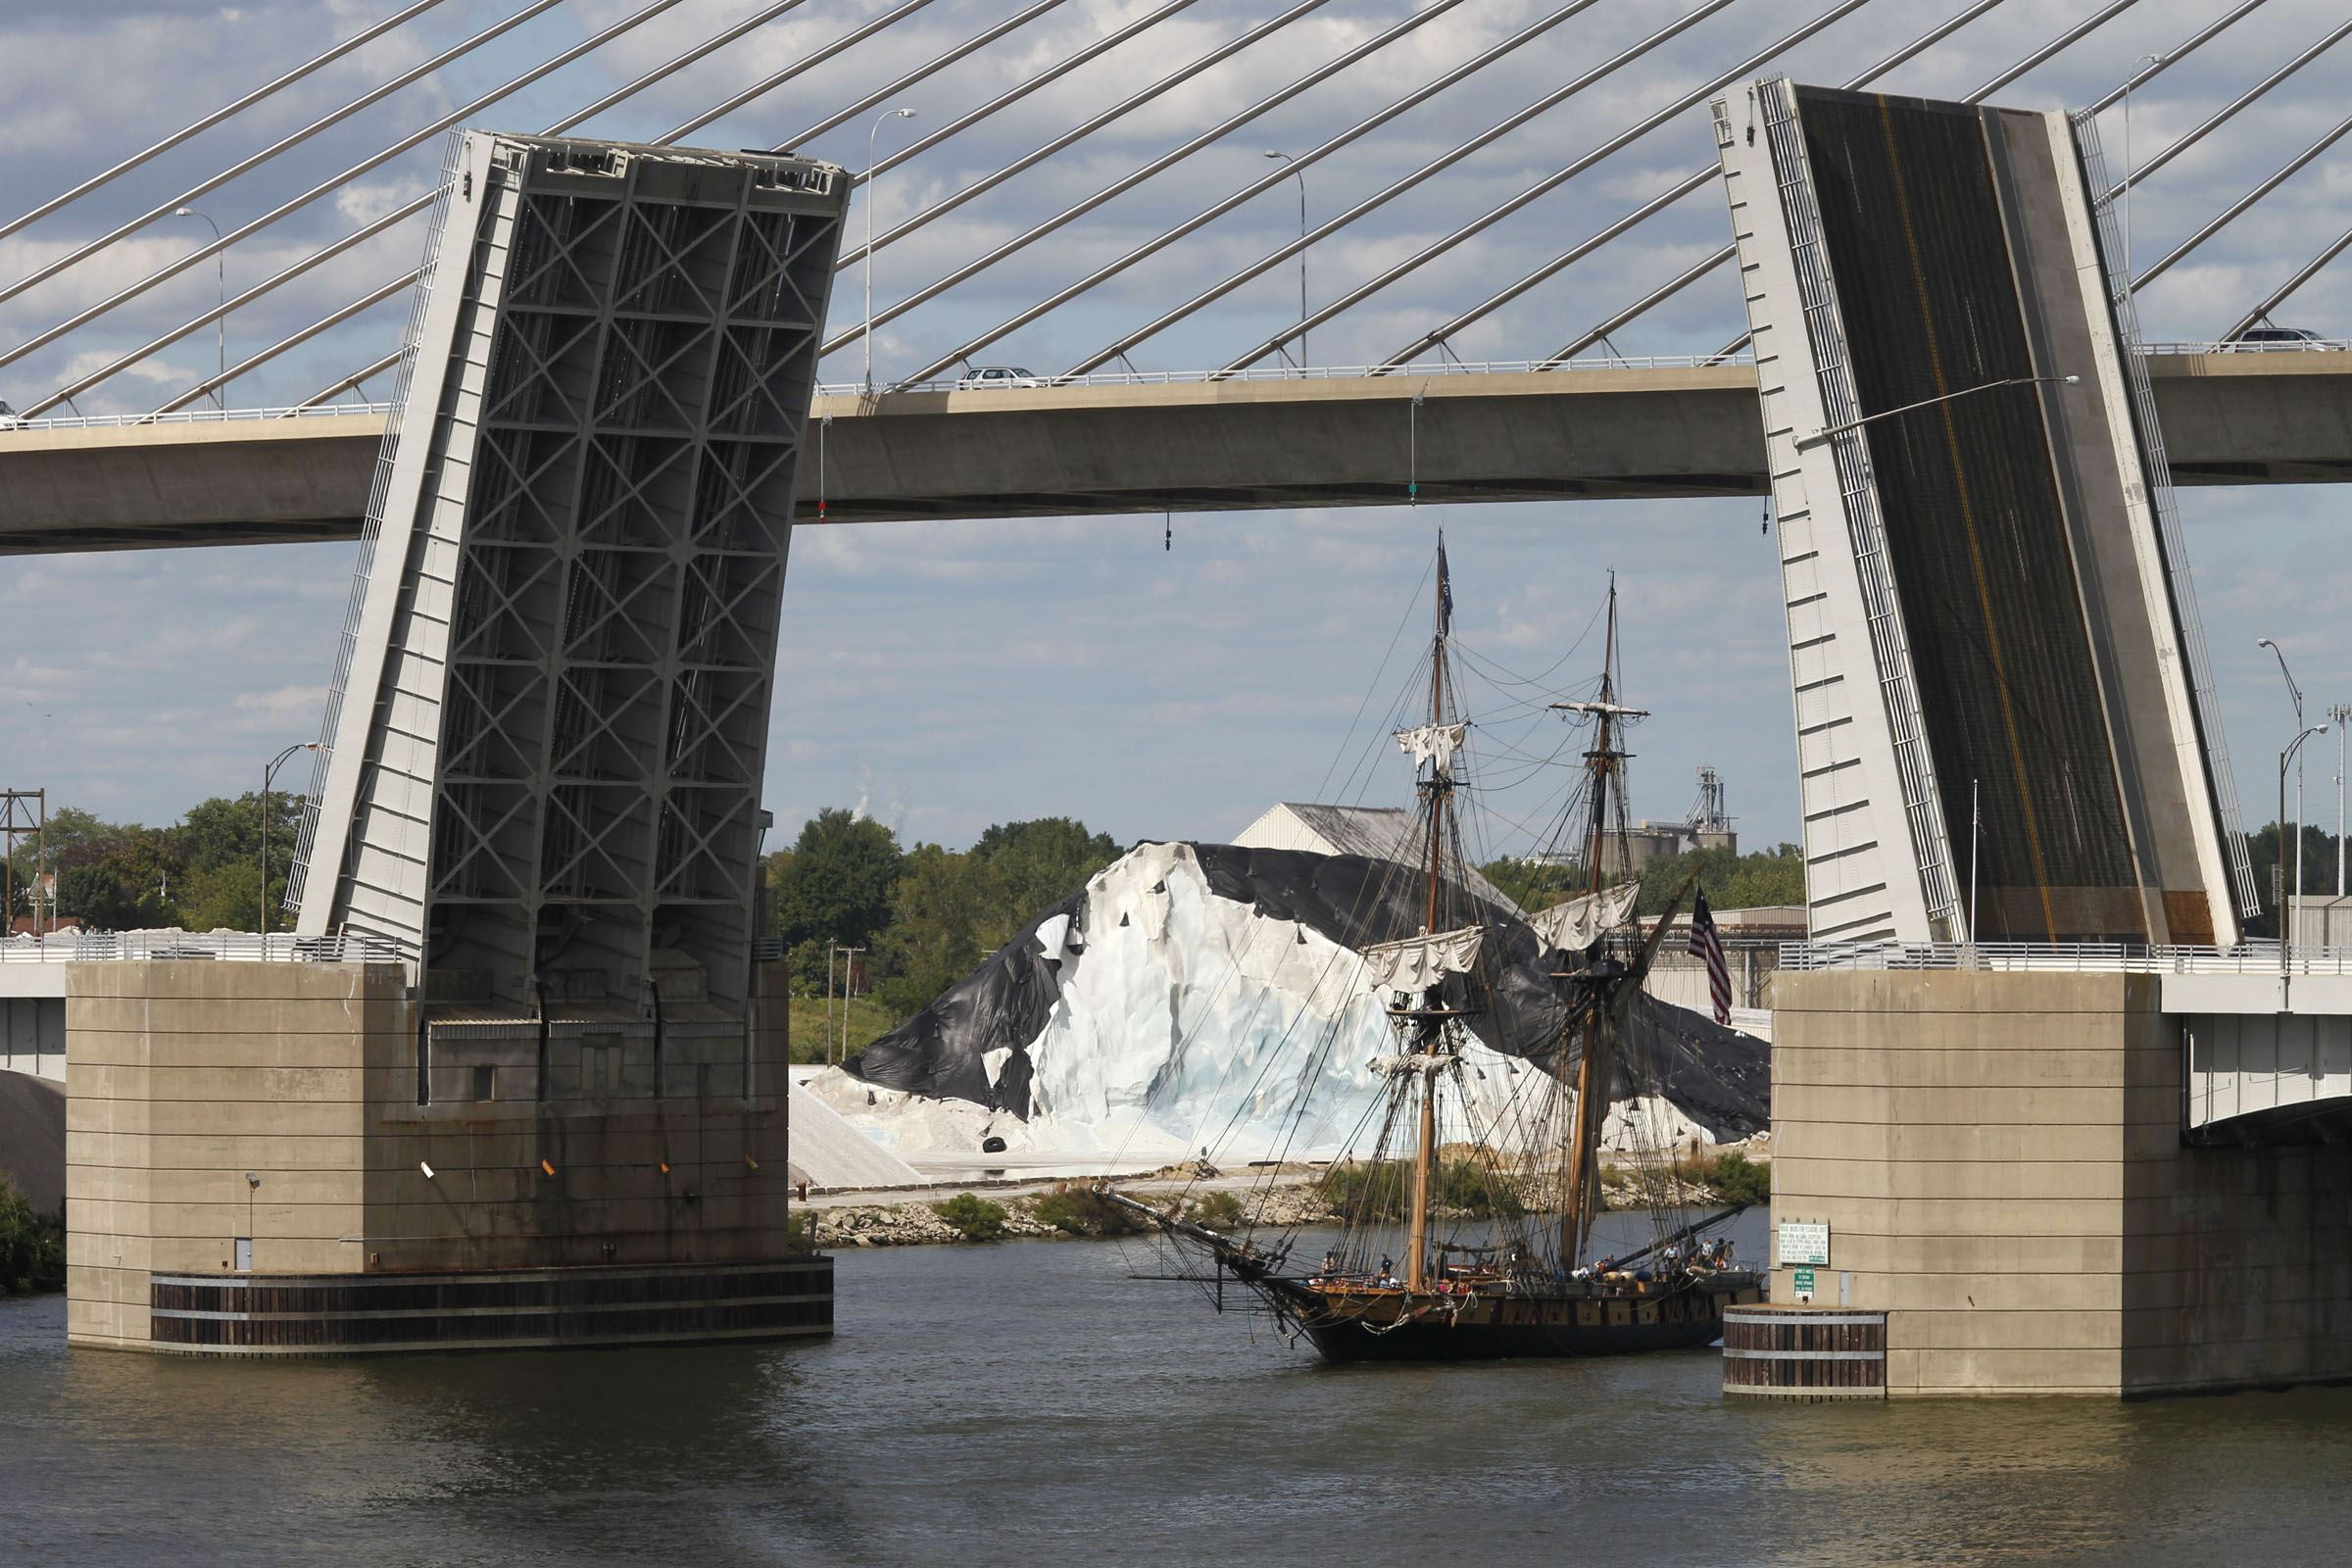 Haircut Coupons Toledo Ohio - The u s brig niagara arrives to the national museum of great lakes in toledo ohio the blade lori king